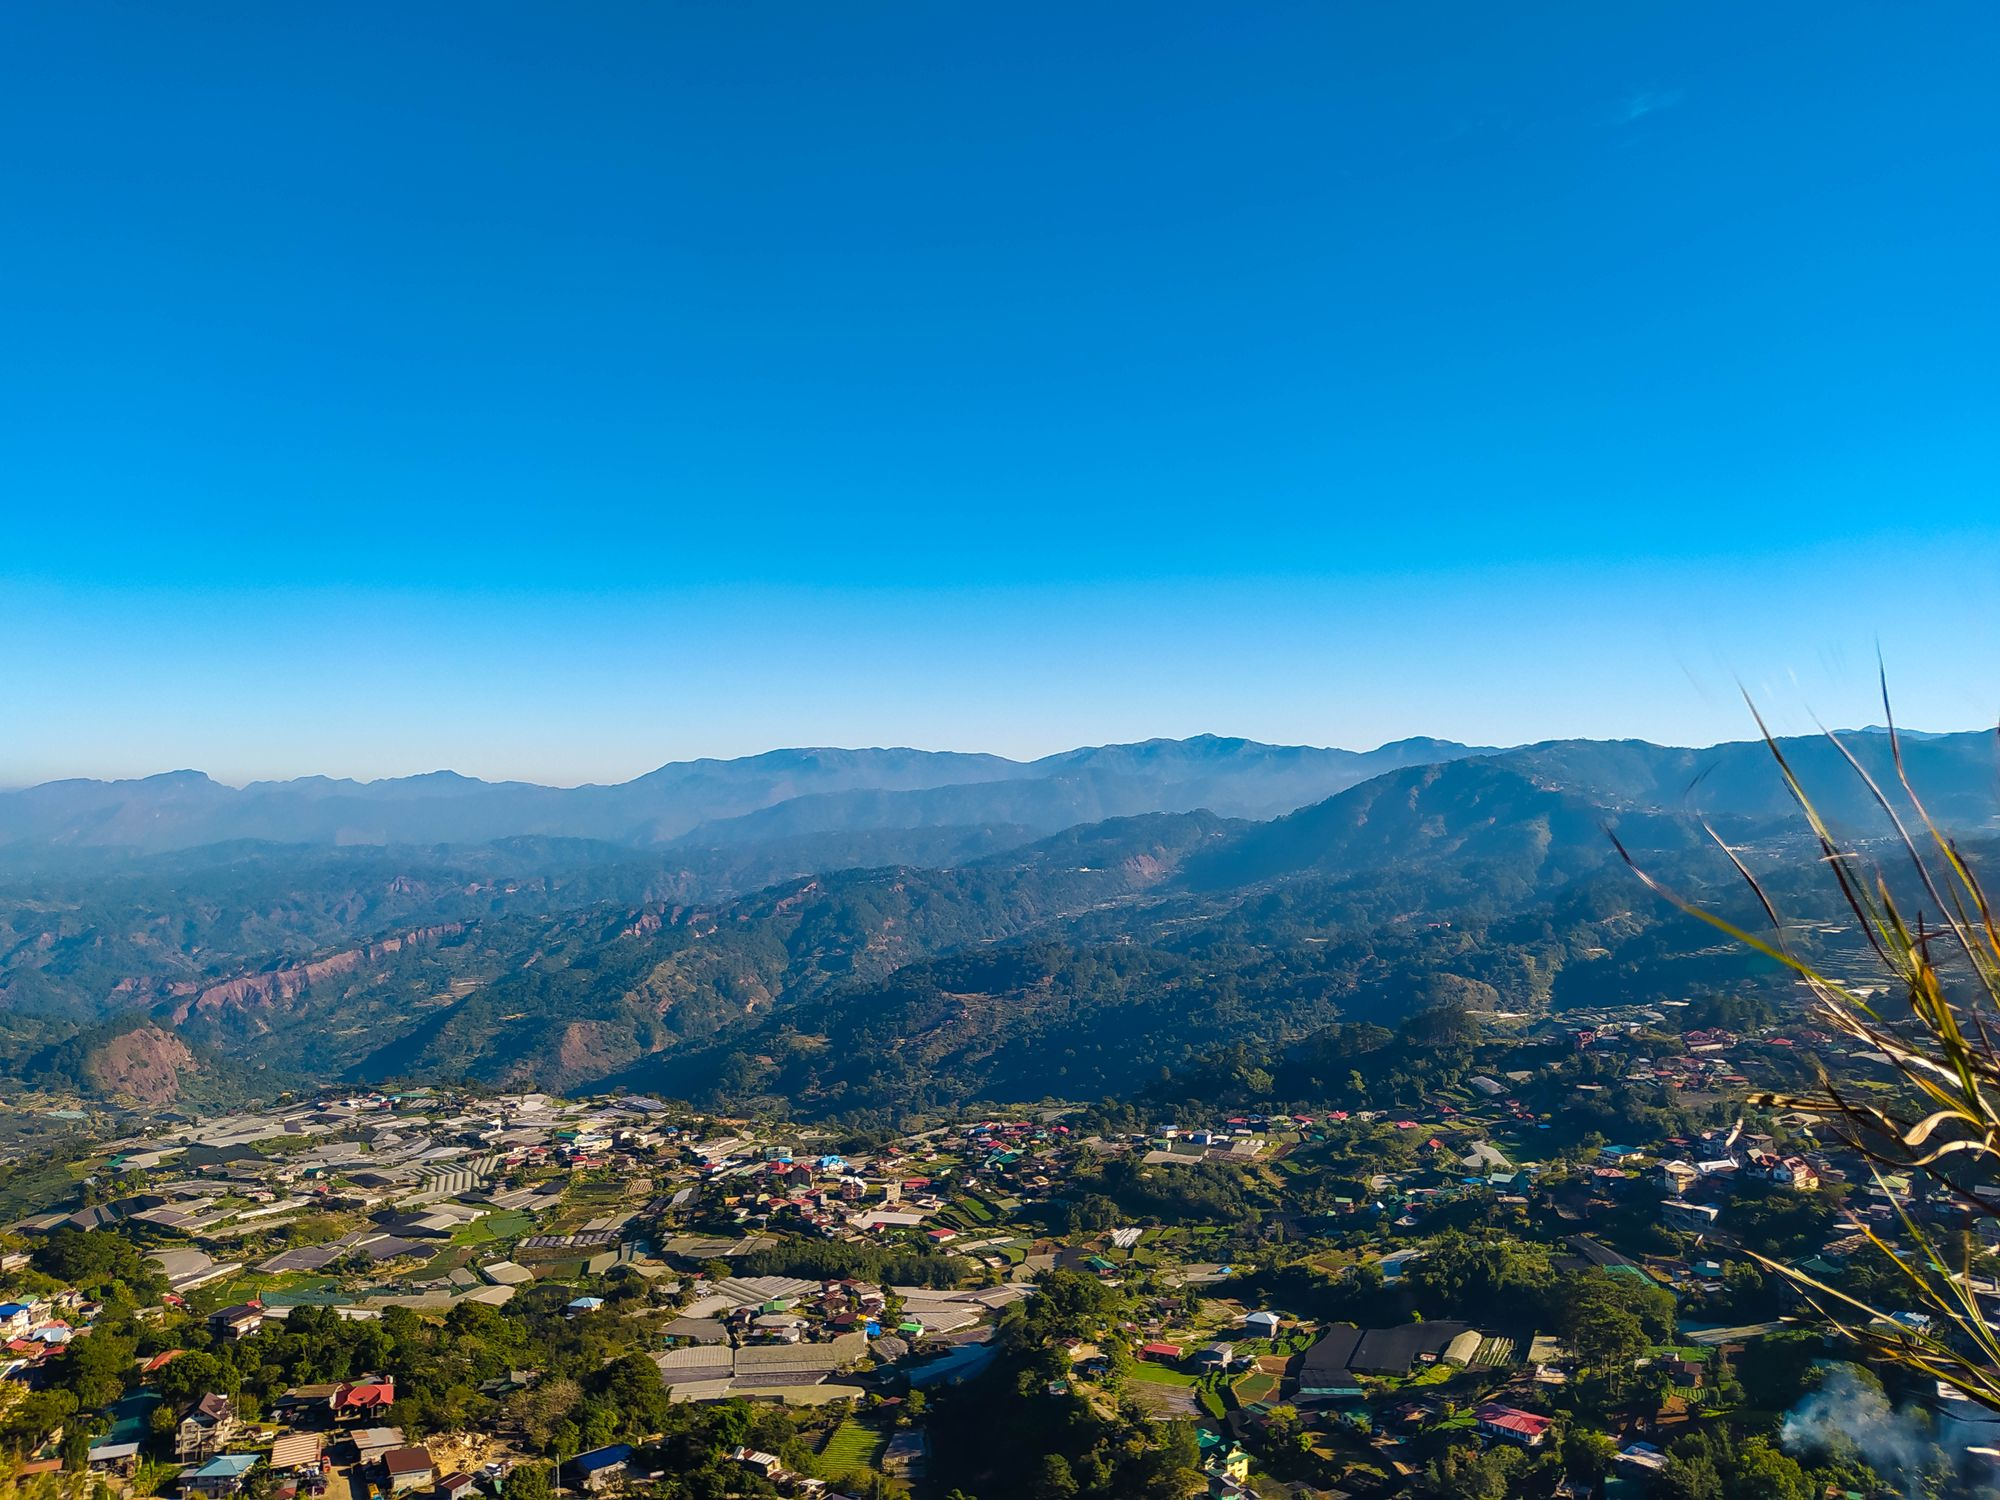 A valley town surrounded by a mountain range beneath a clear blue sky